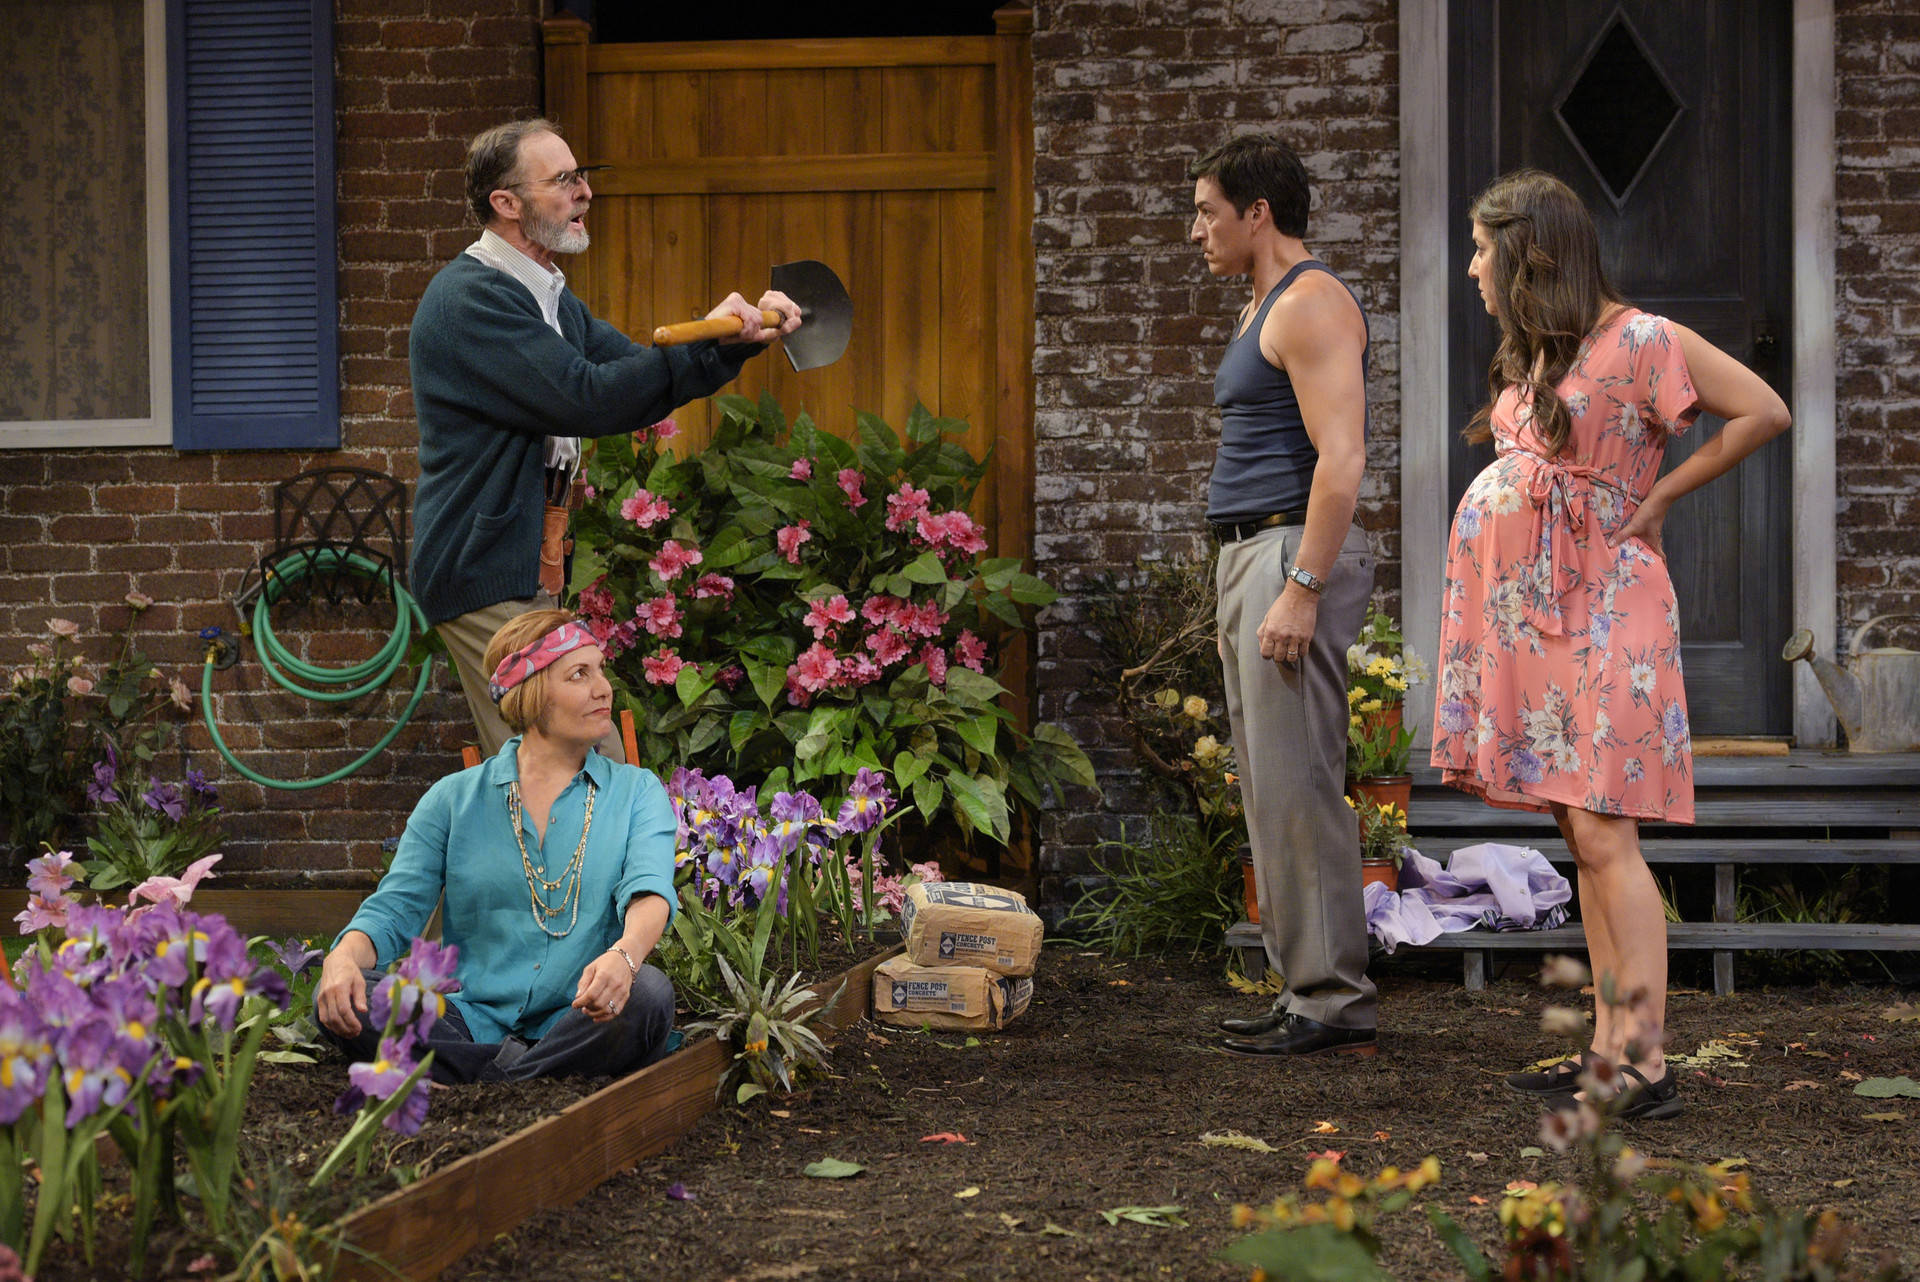 Neighbors Pablo (Michael Evans Lopez), Virginia (Amy Resnick), Tania (Marlene Martinez) and Frank (Jackson Davis) get testy with each other in 'Native Gardens' by Karen Zacarías presented by TheatreWorks Silicon Valley. Courtesy of Kevin Berne